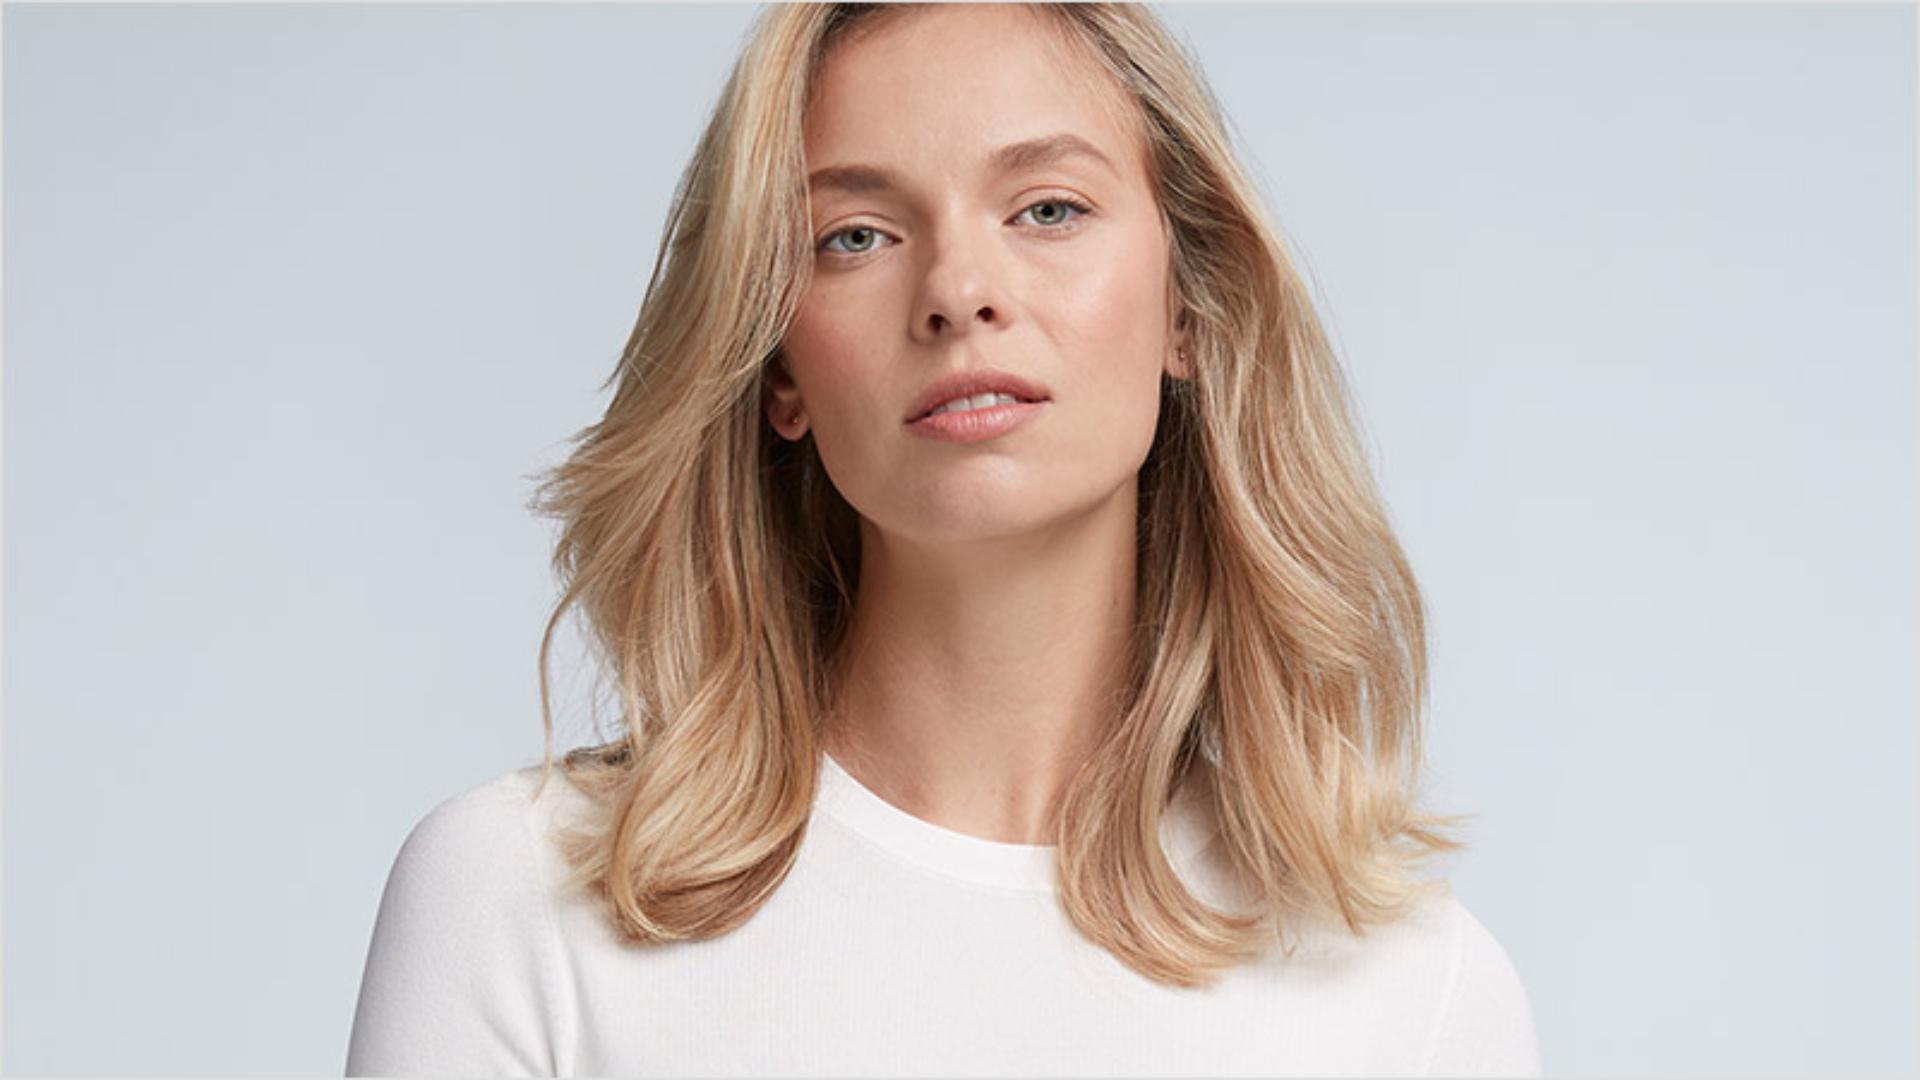 Model with textured volume